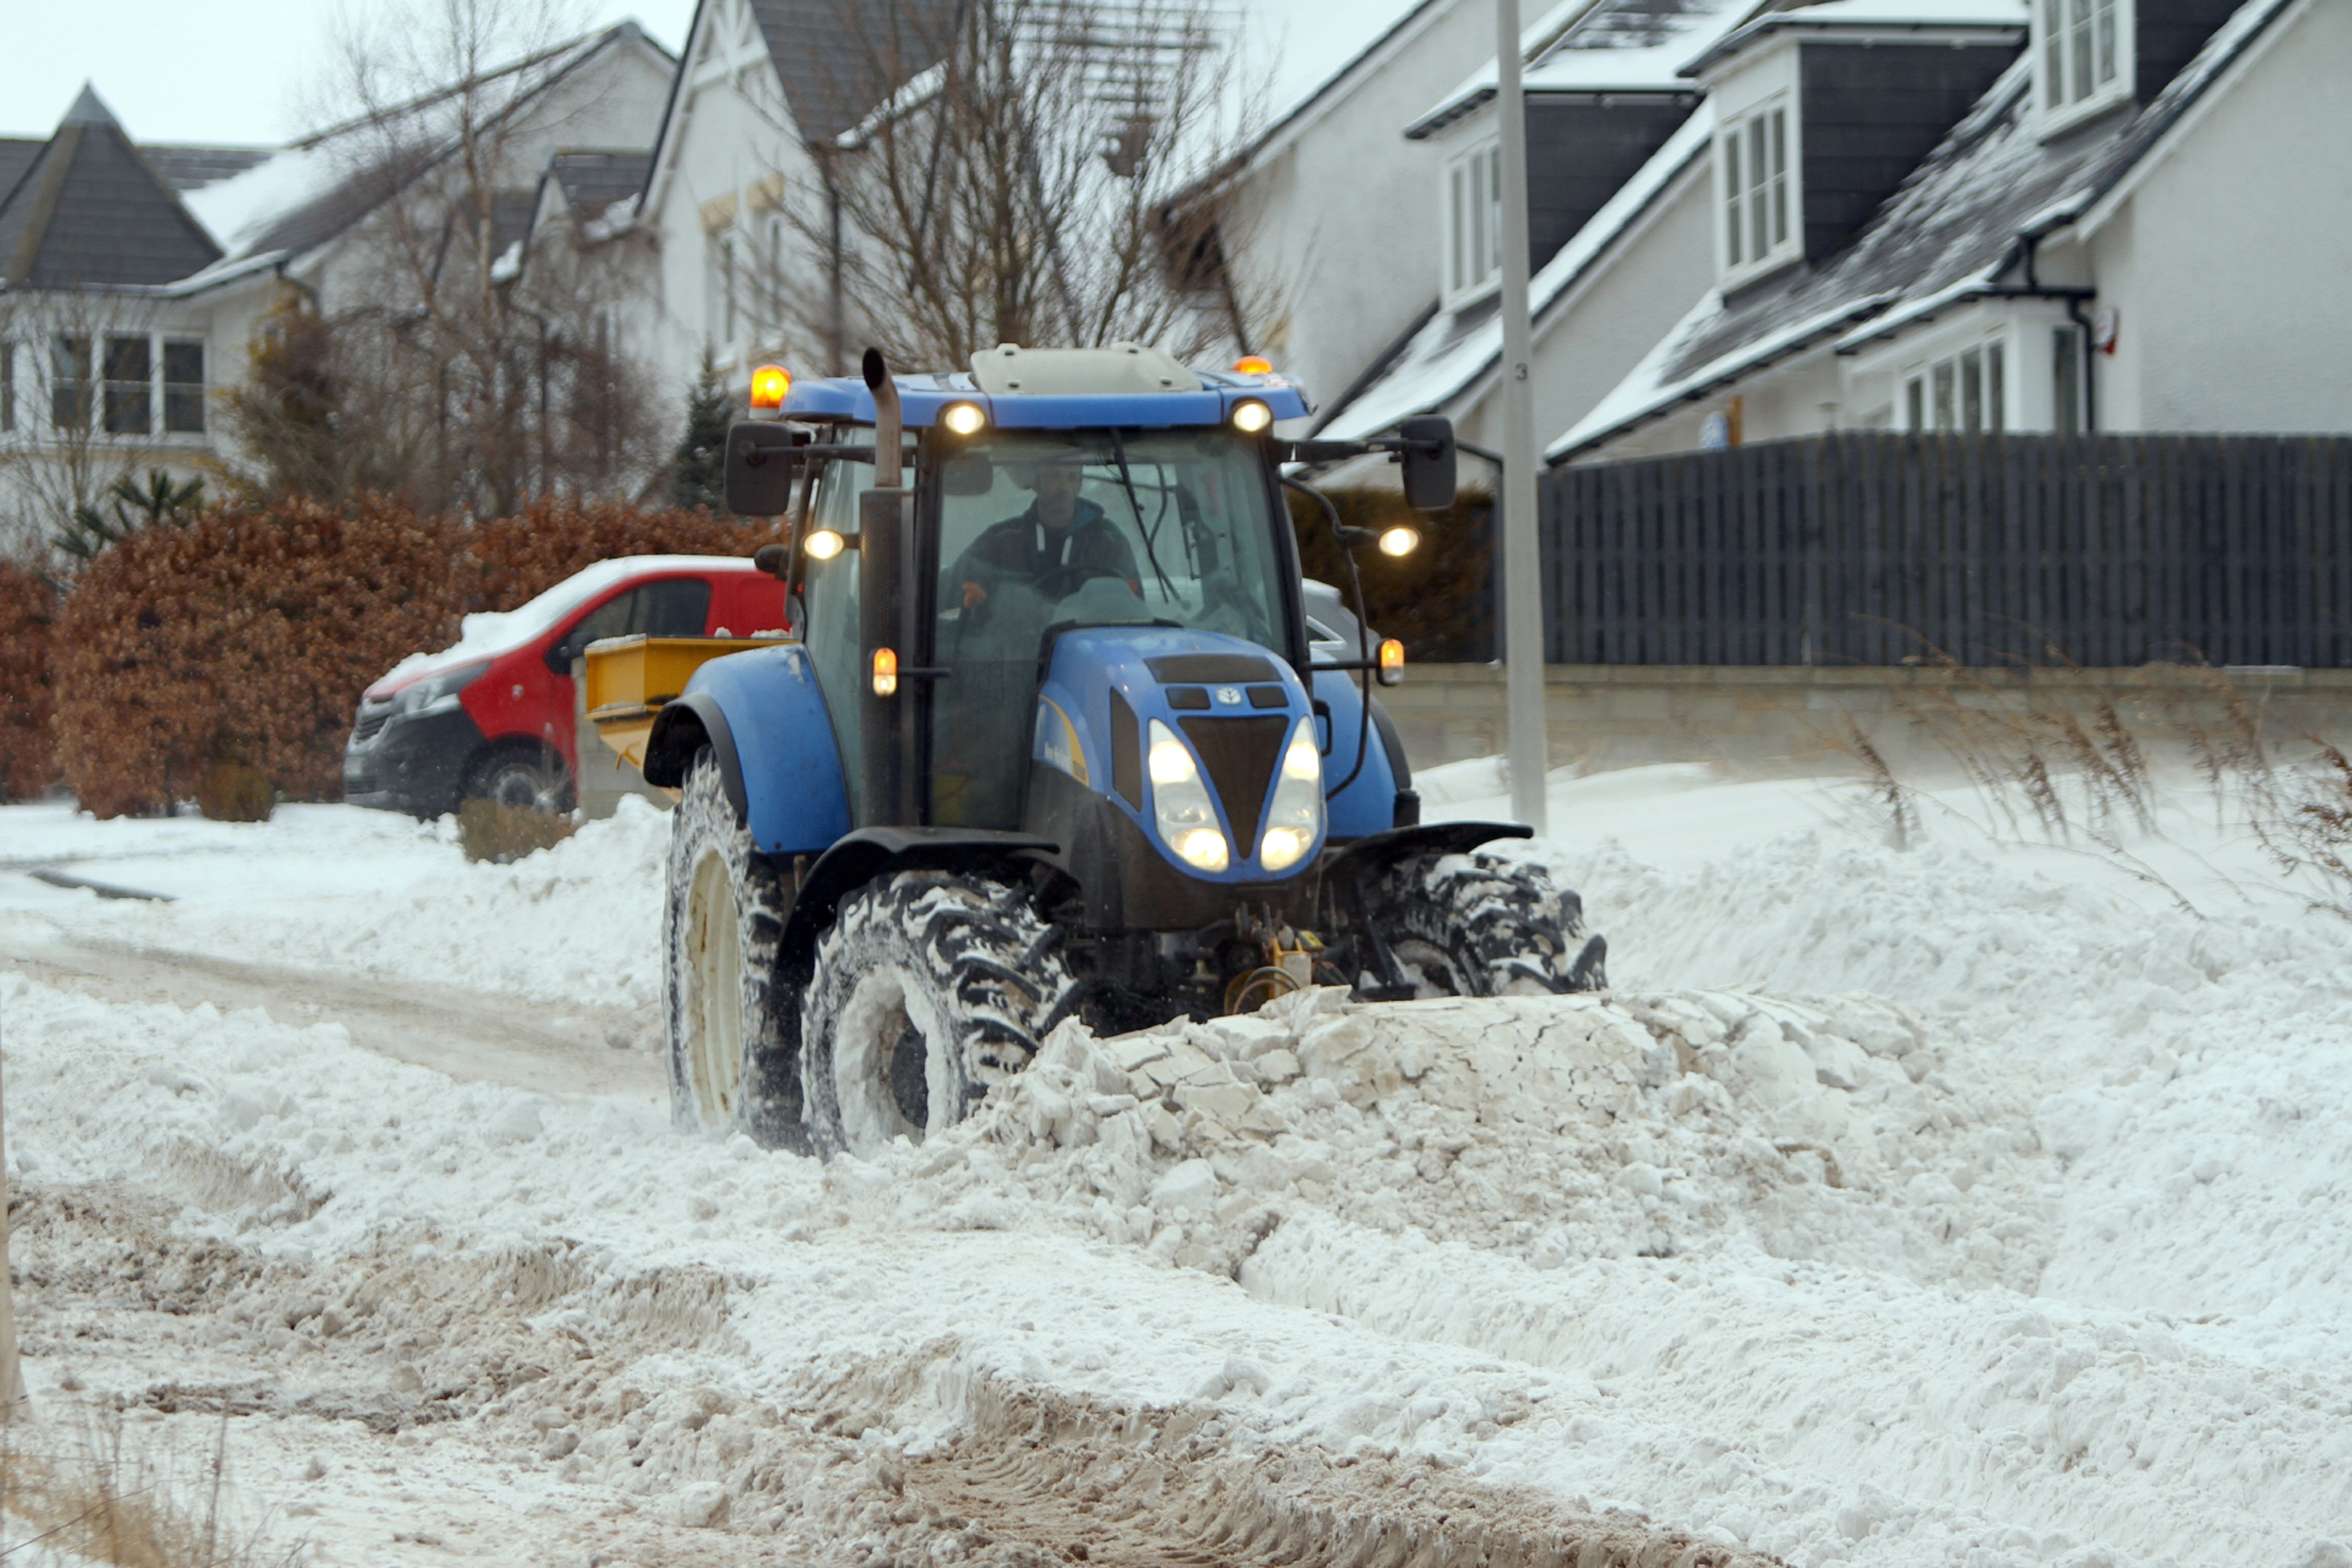 Tractors helping to clear snow on Balmossie Brae in Dundee.